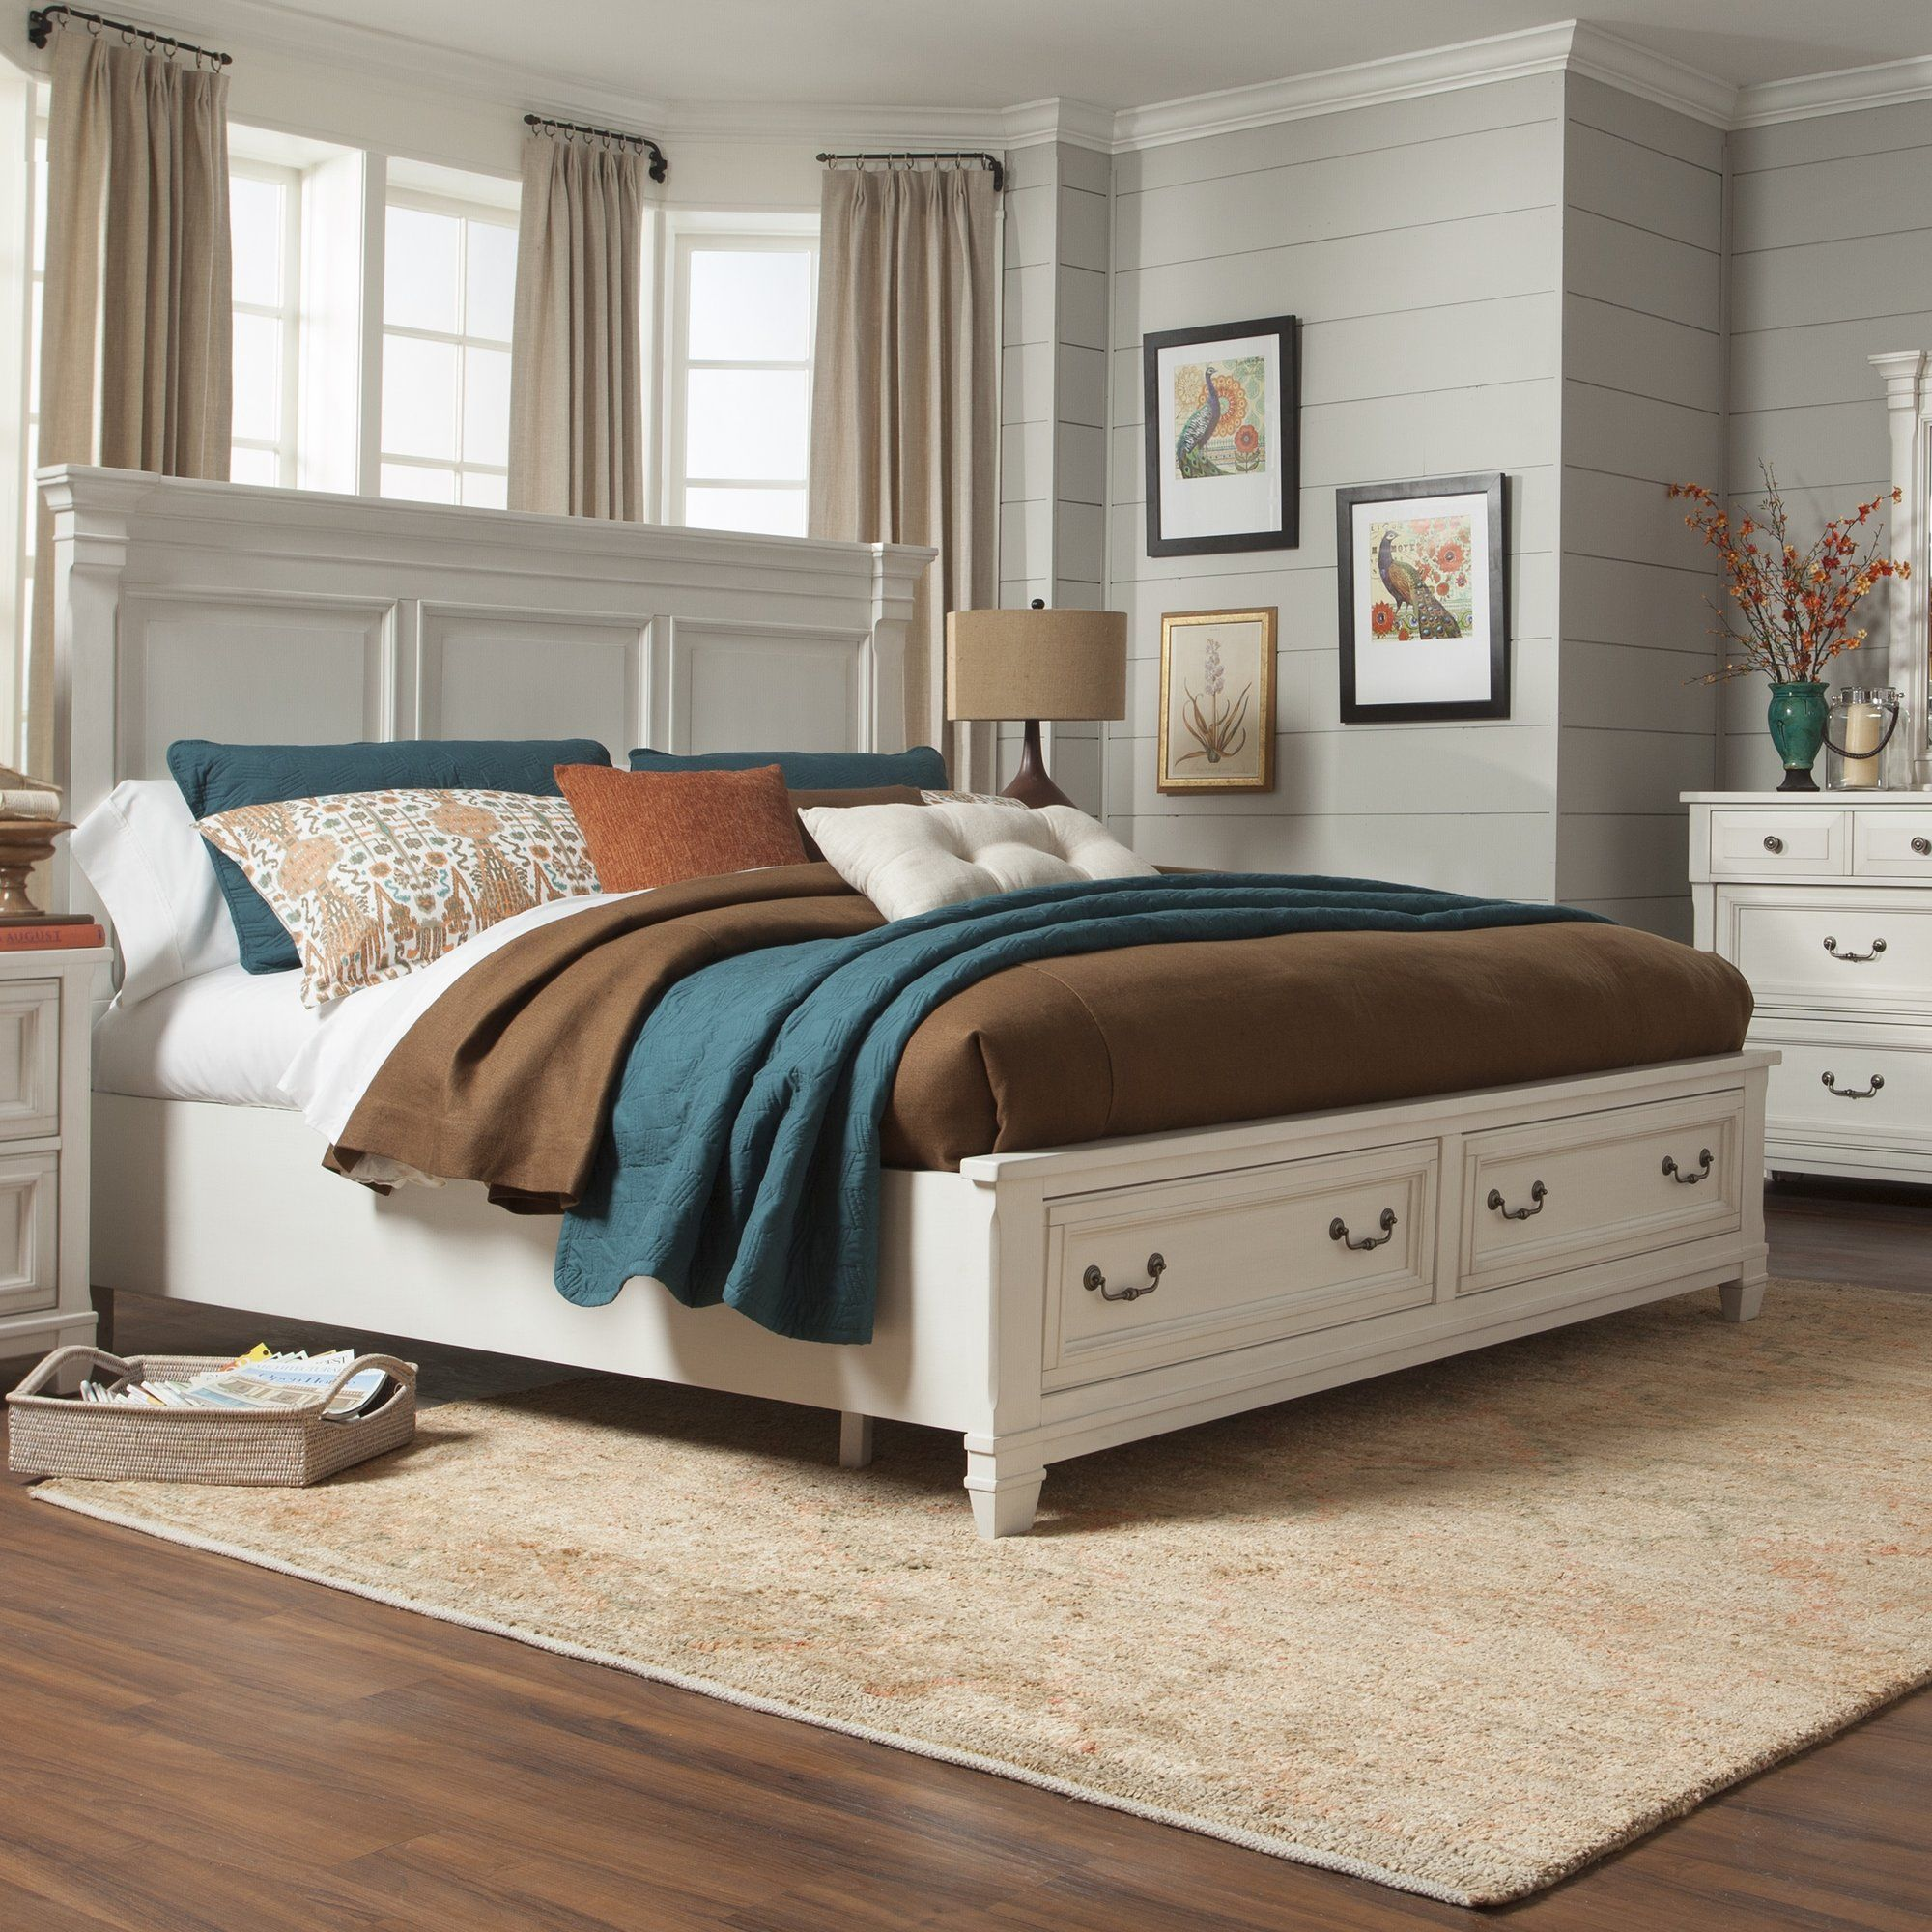 barker ridge storage panel bed bedrooms pinterest storage